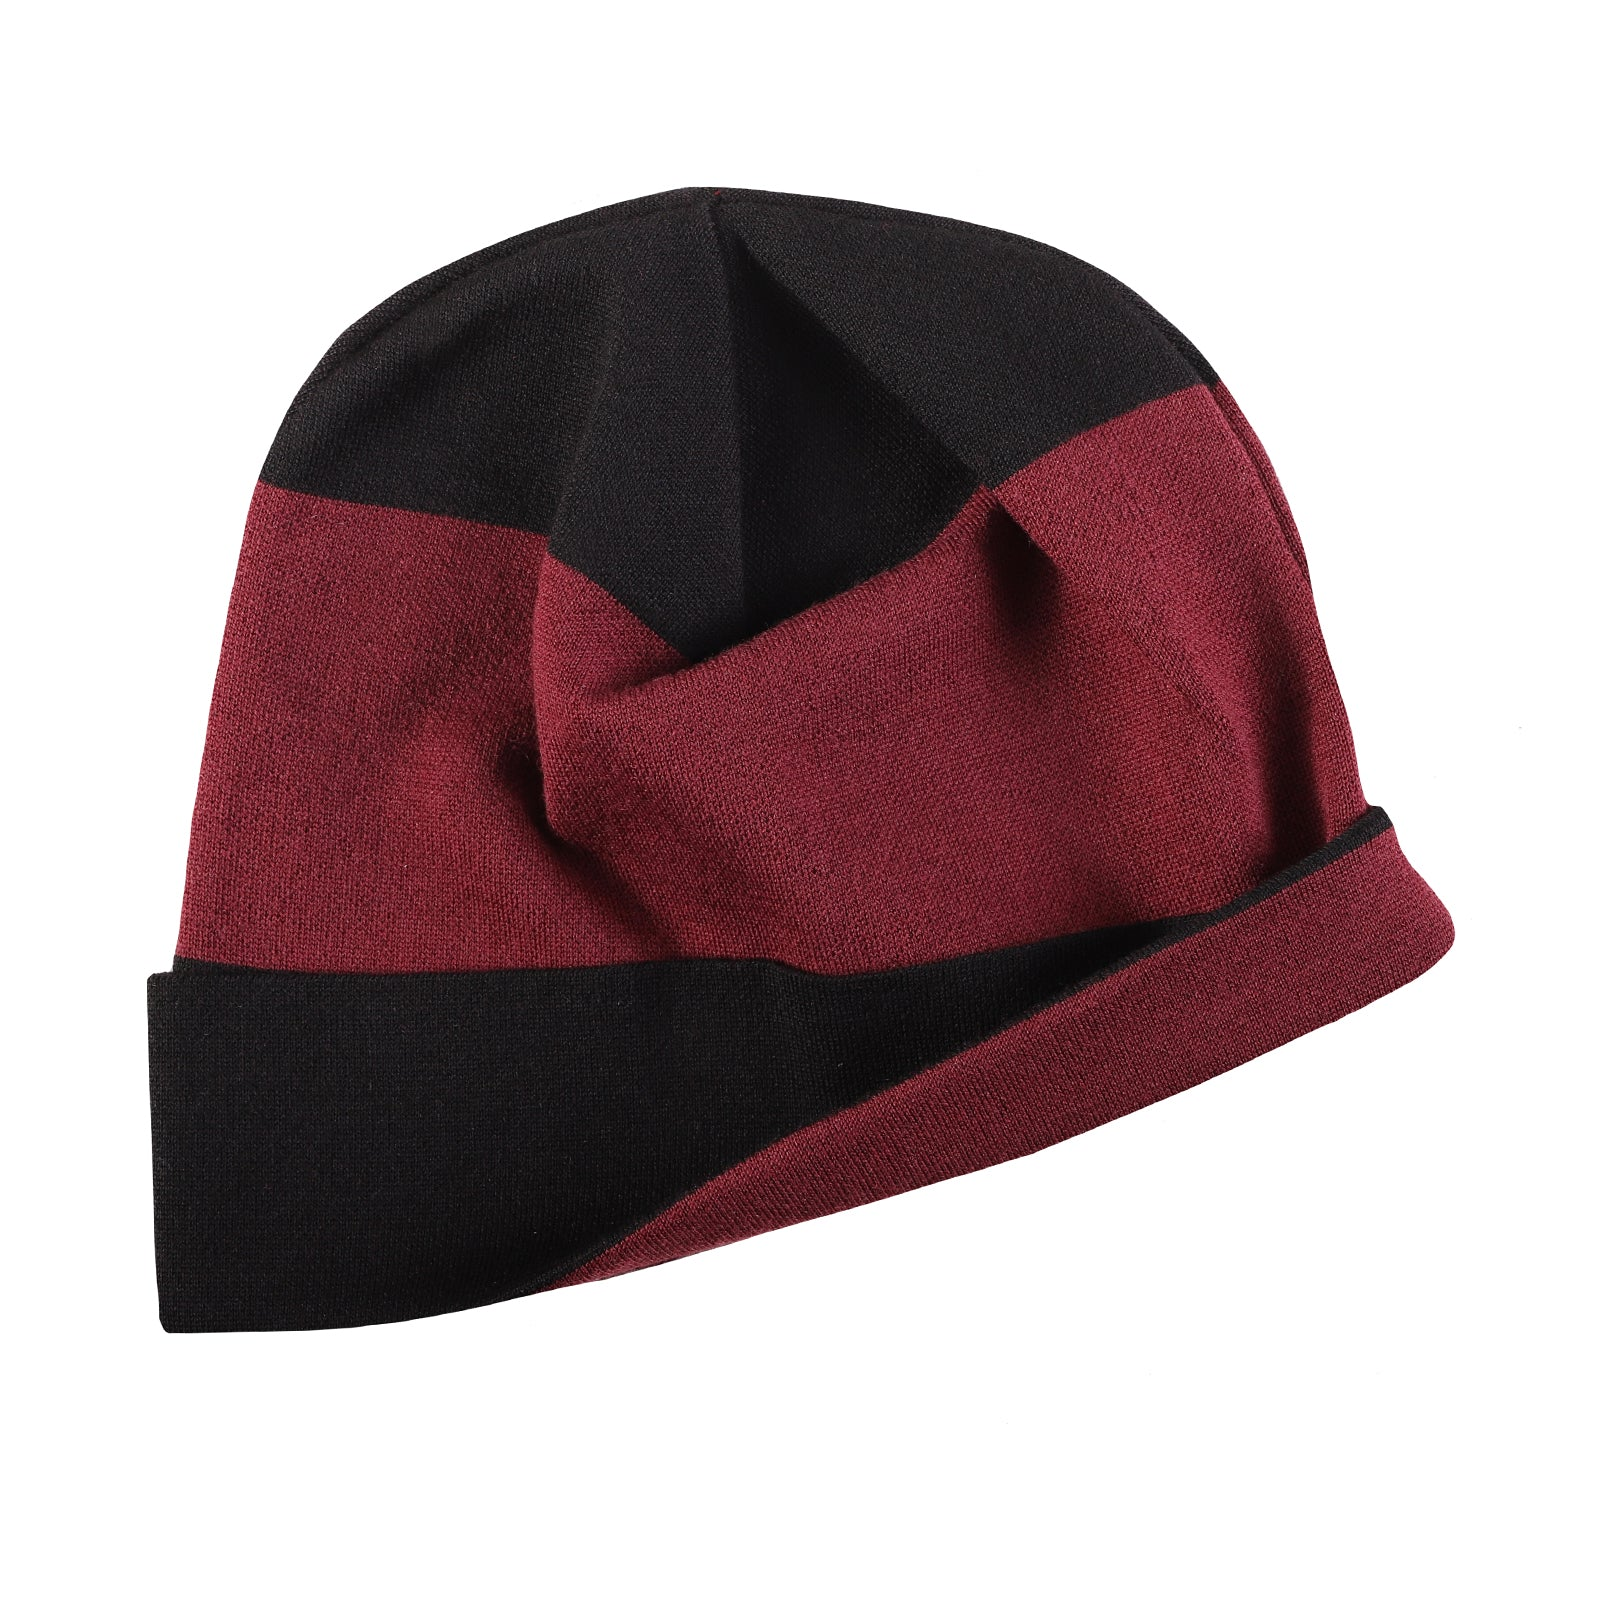 The Two-Colored Hat